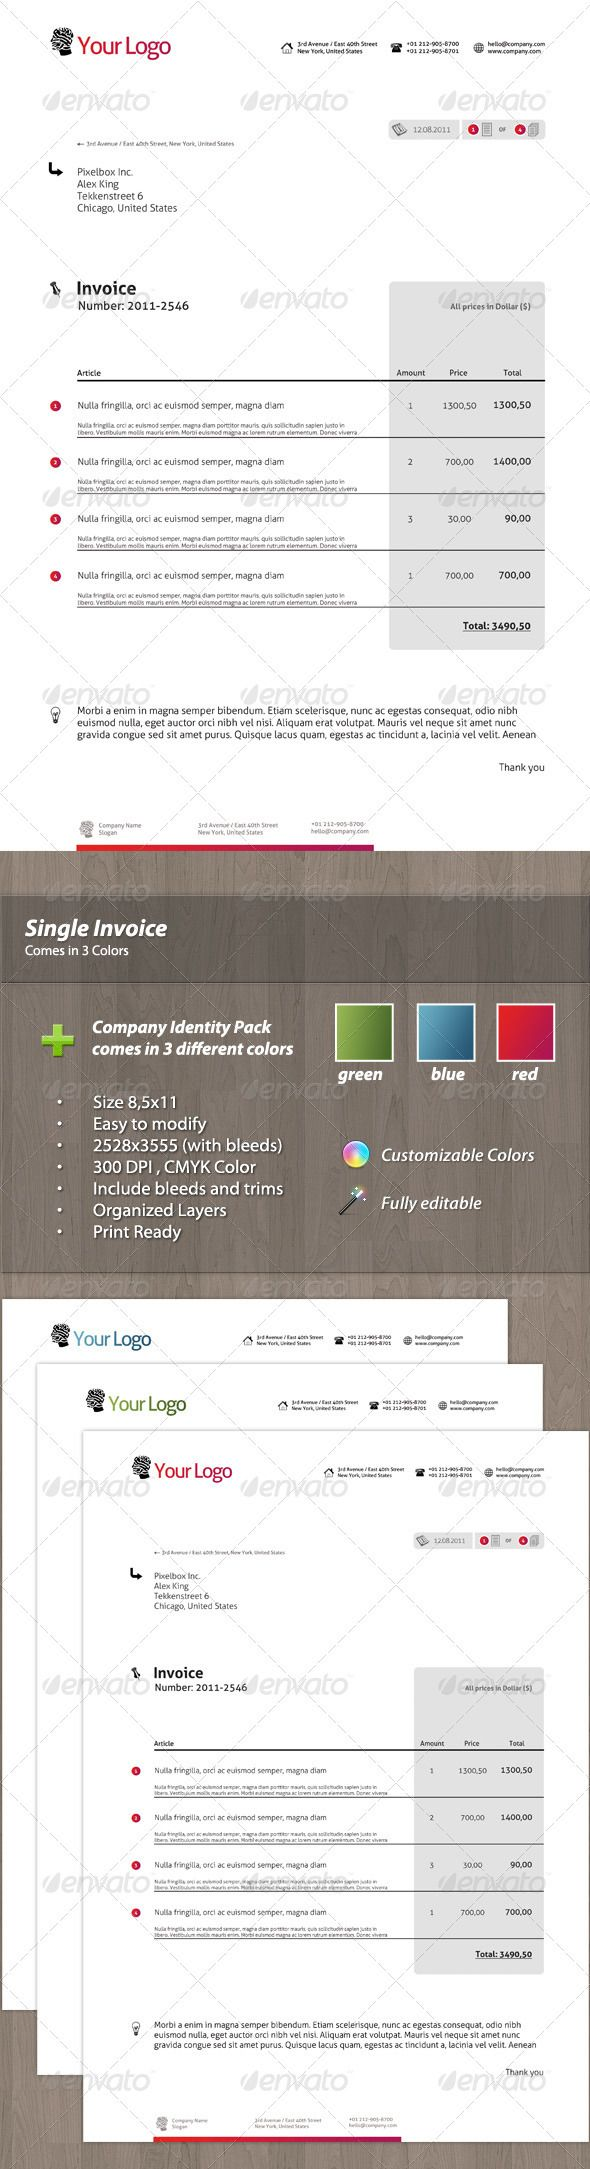 Modern Single Invoice Fonts Stationery And Paper